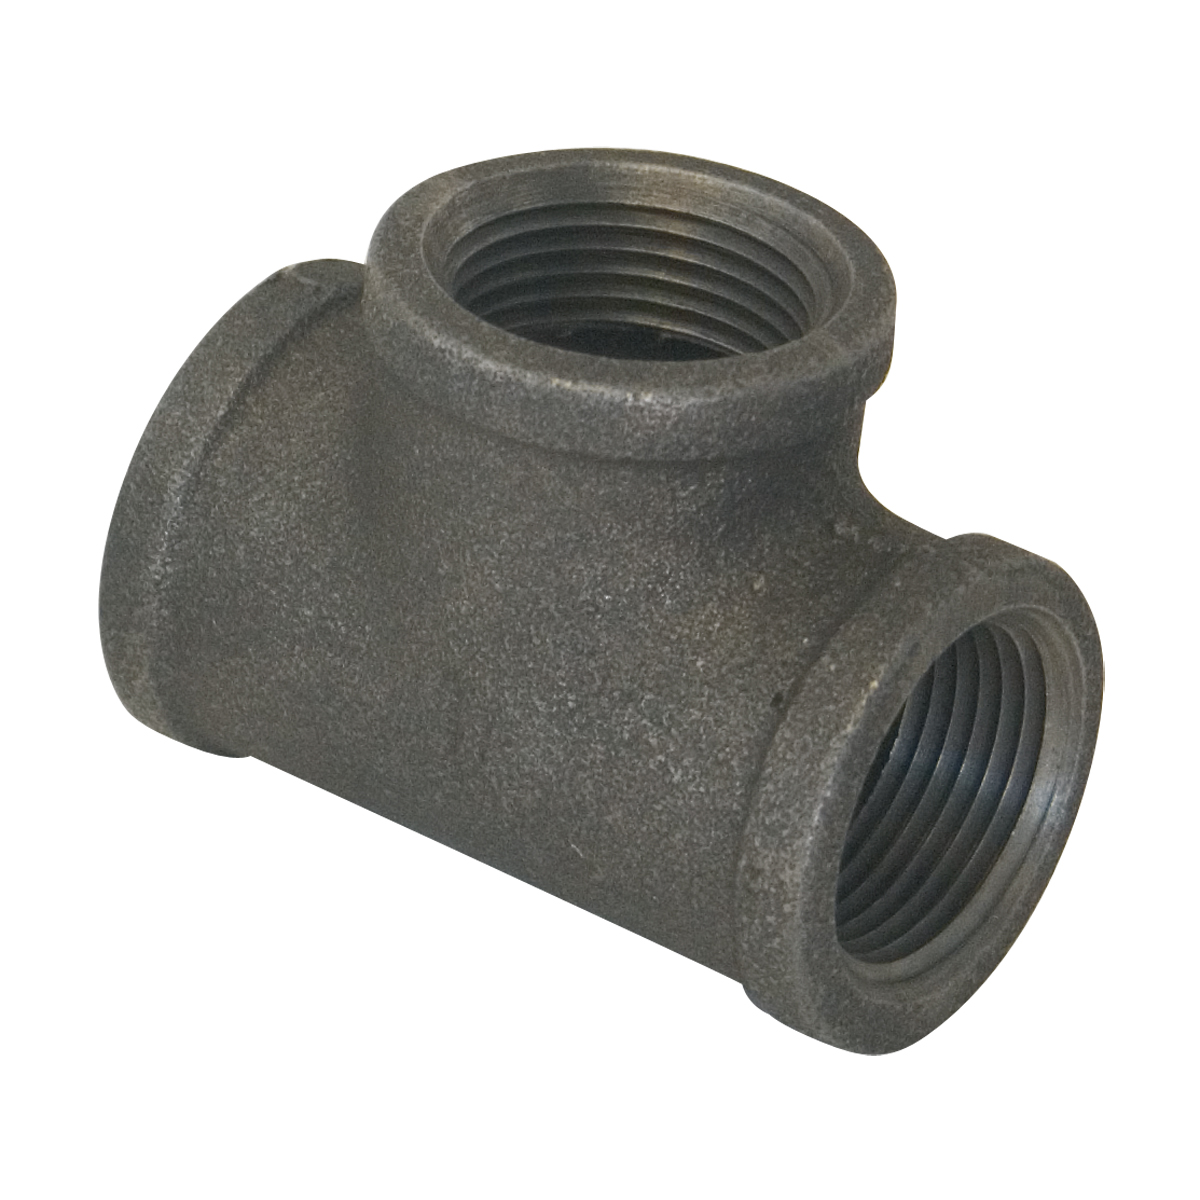 Black malleable fittings contractor access